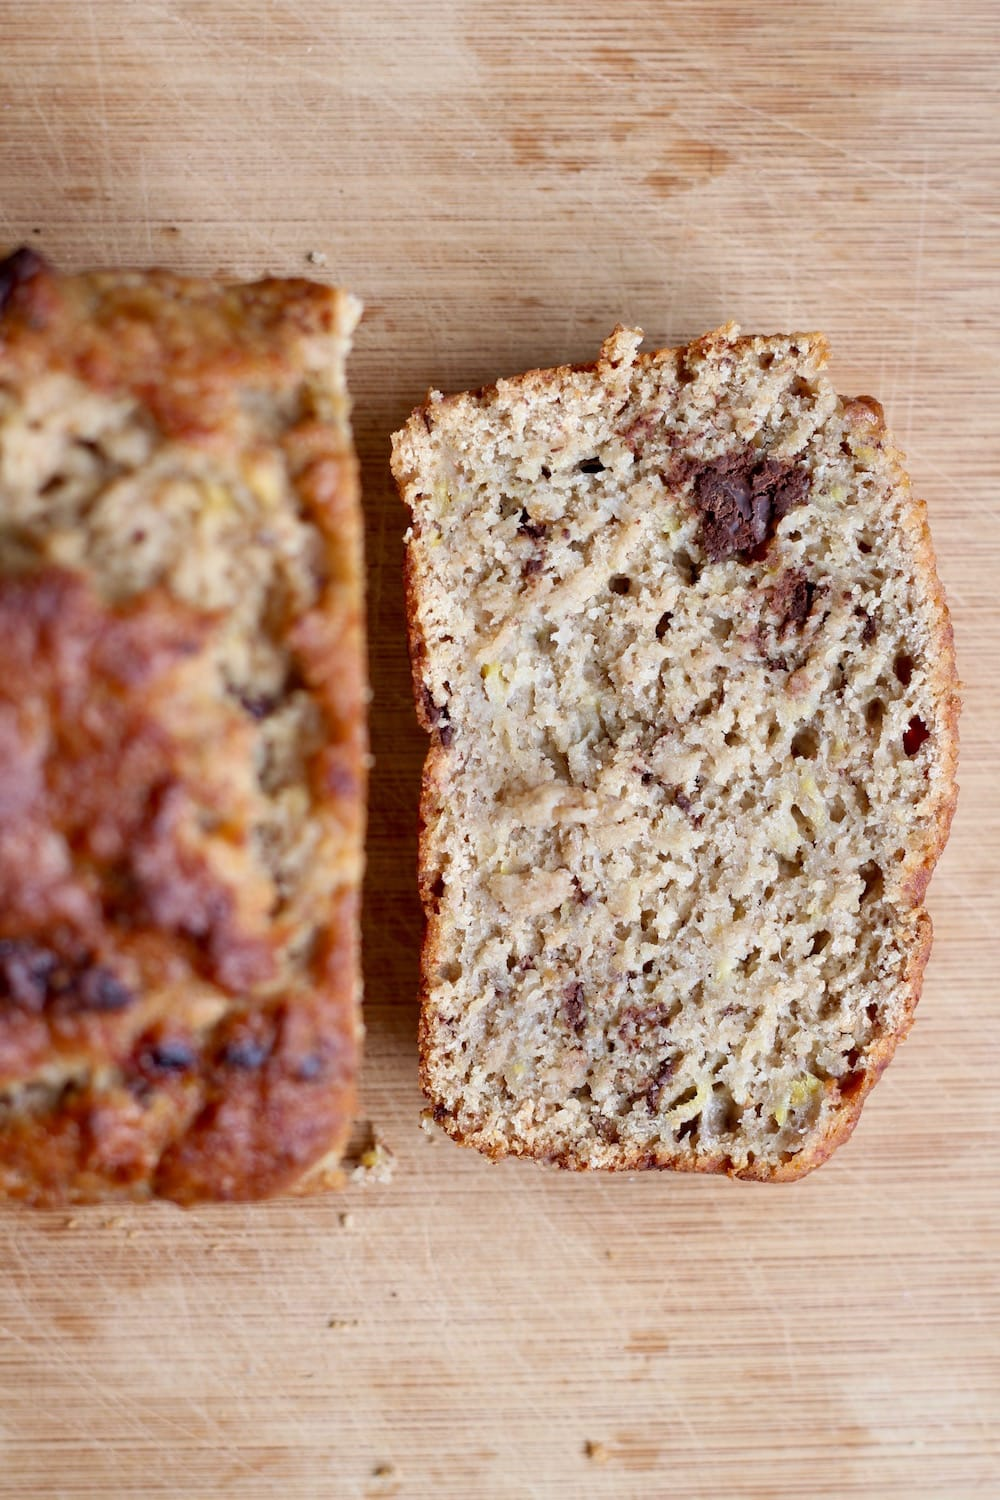 Vegan Oil Free Chocolate Chip Banana Bread | The Conscientious Eater